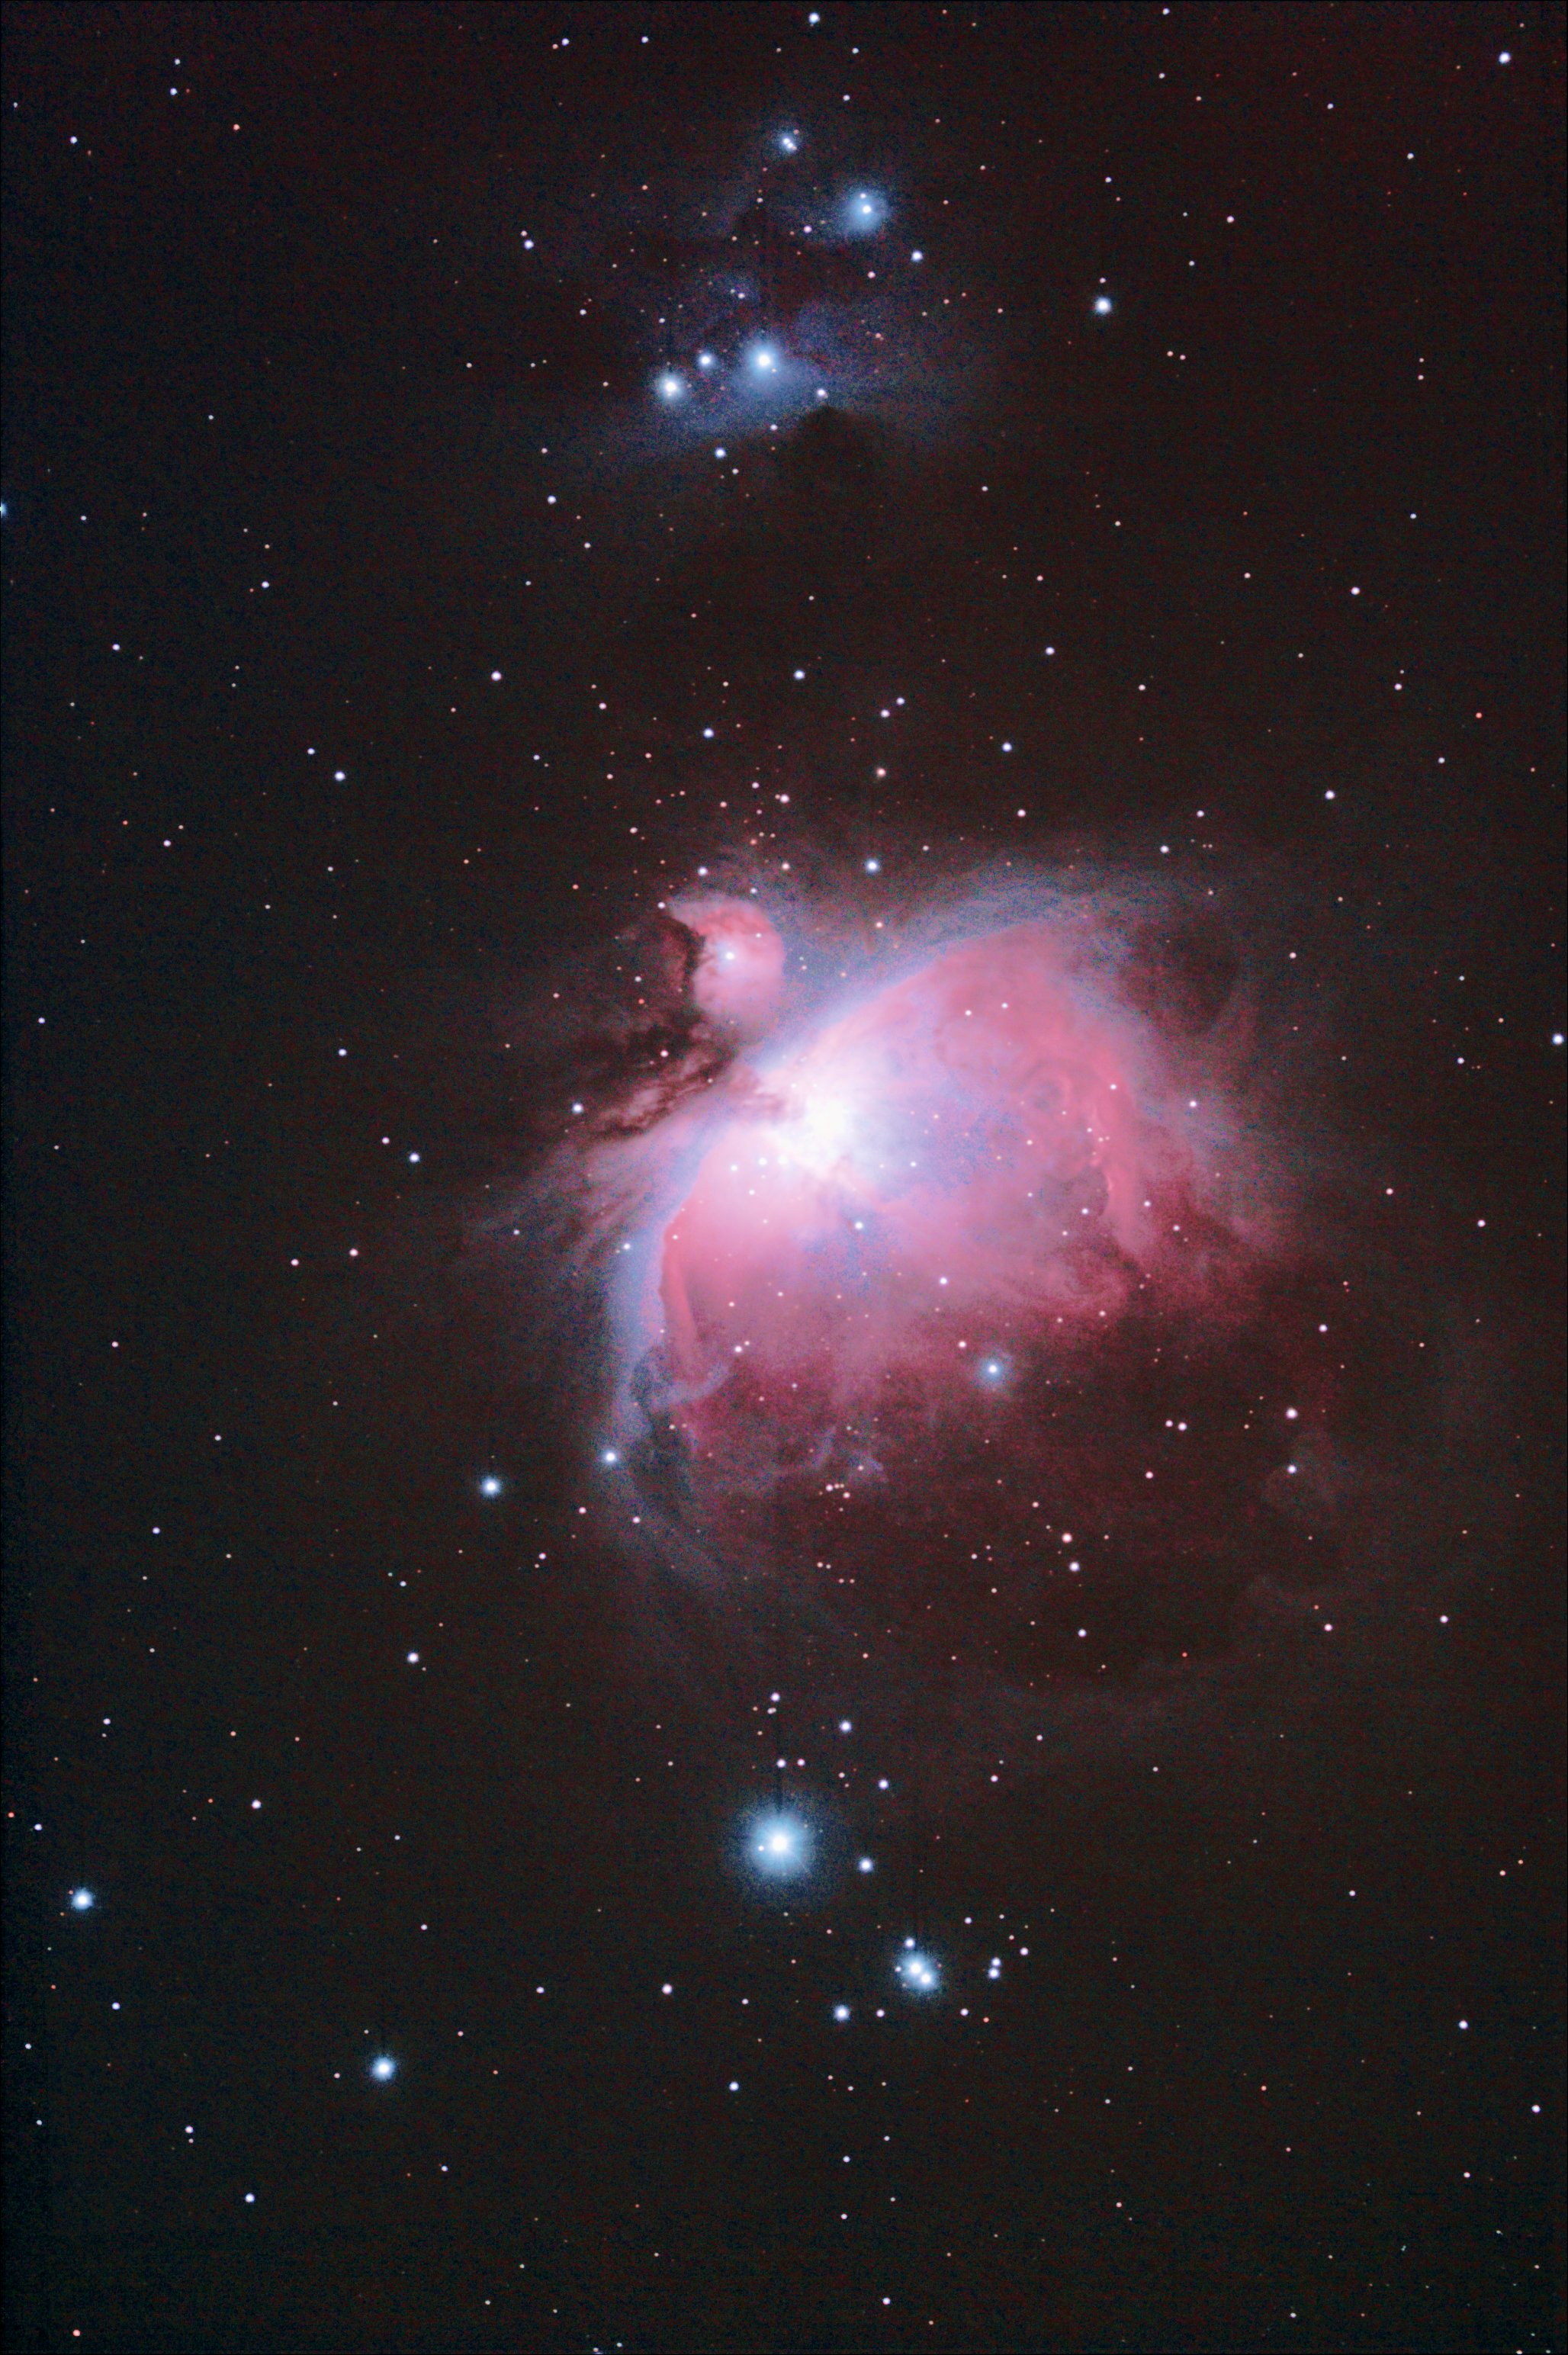 M42/43 from 2008-12-30 and 2010-1-11 data sets